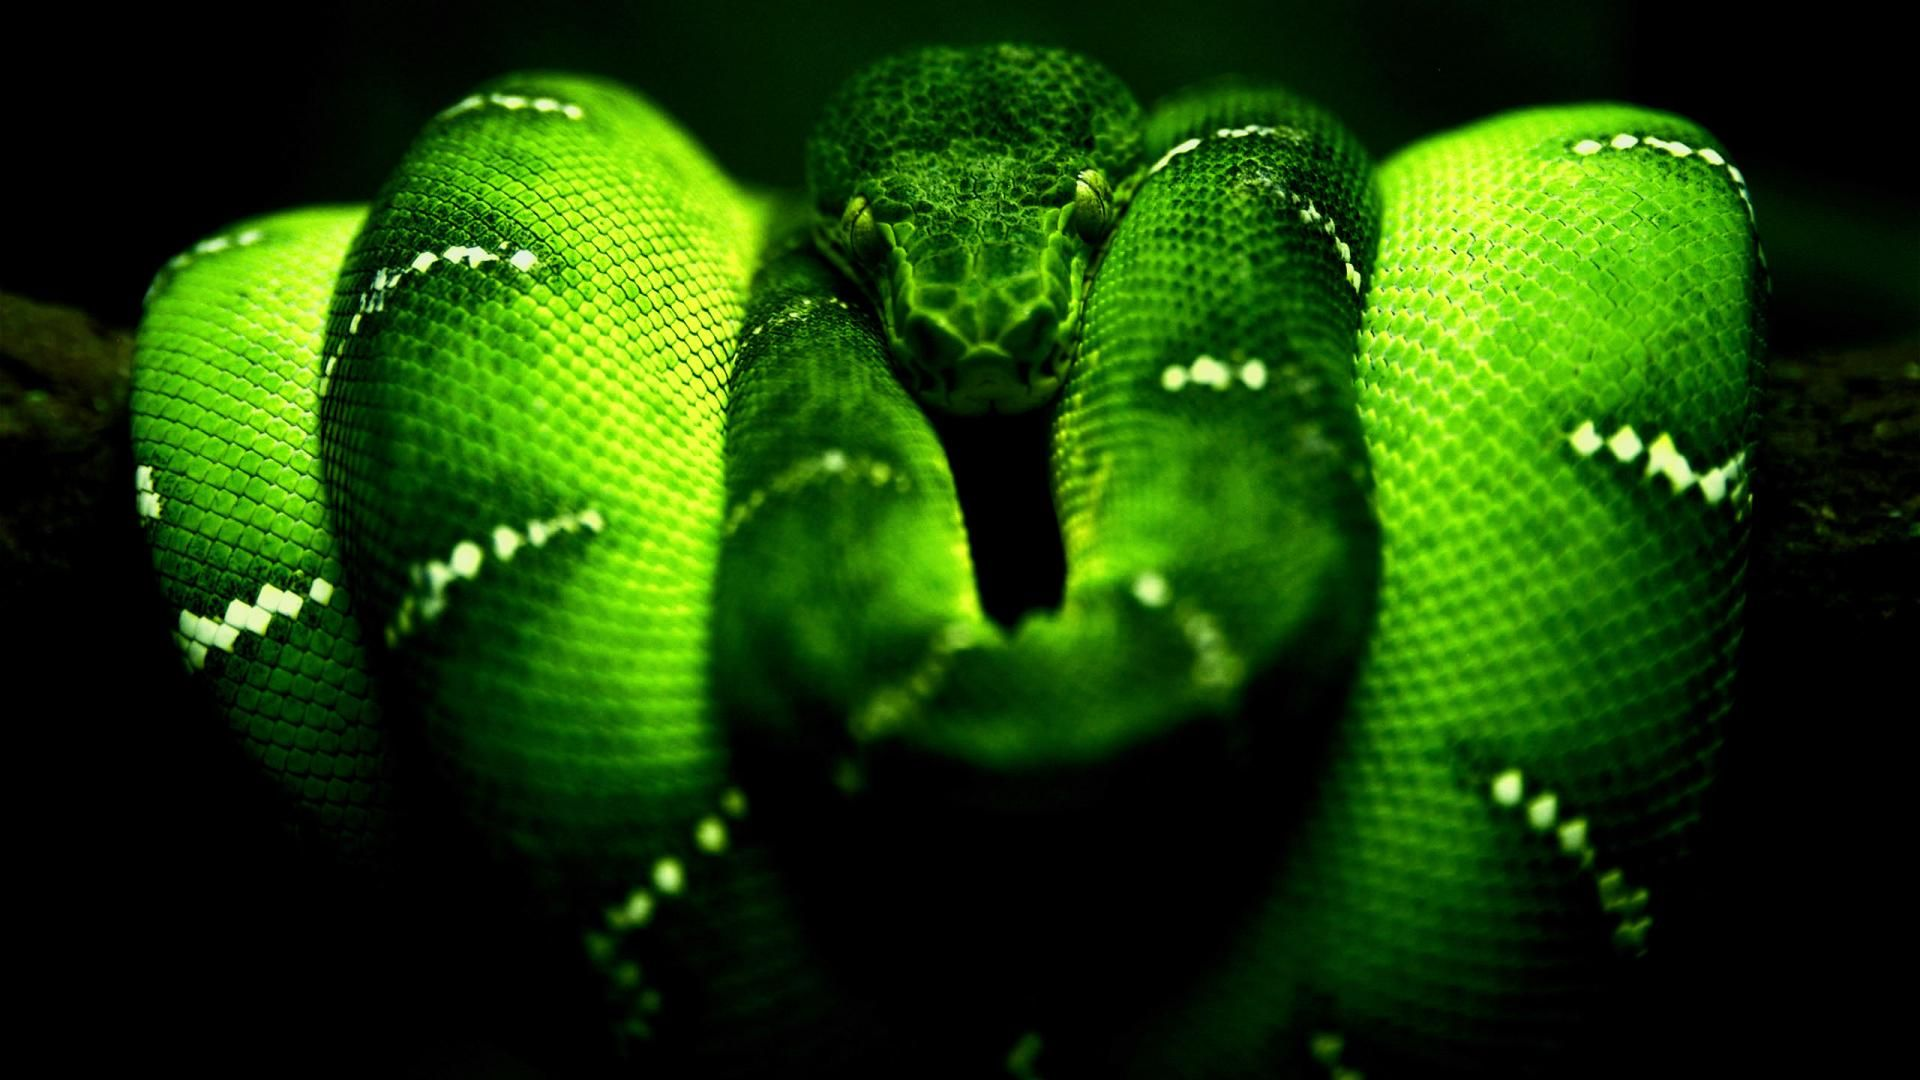 The Wallpapers Snake